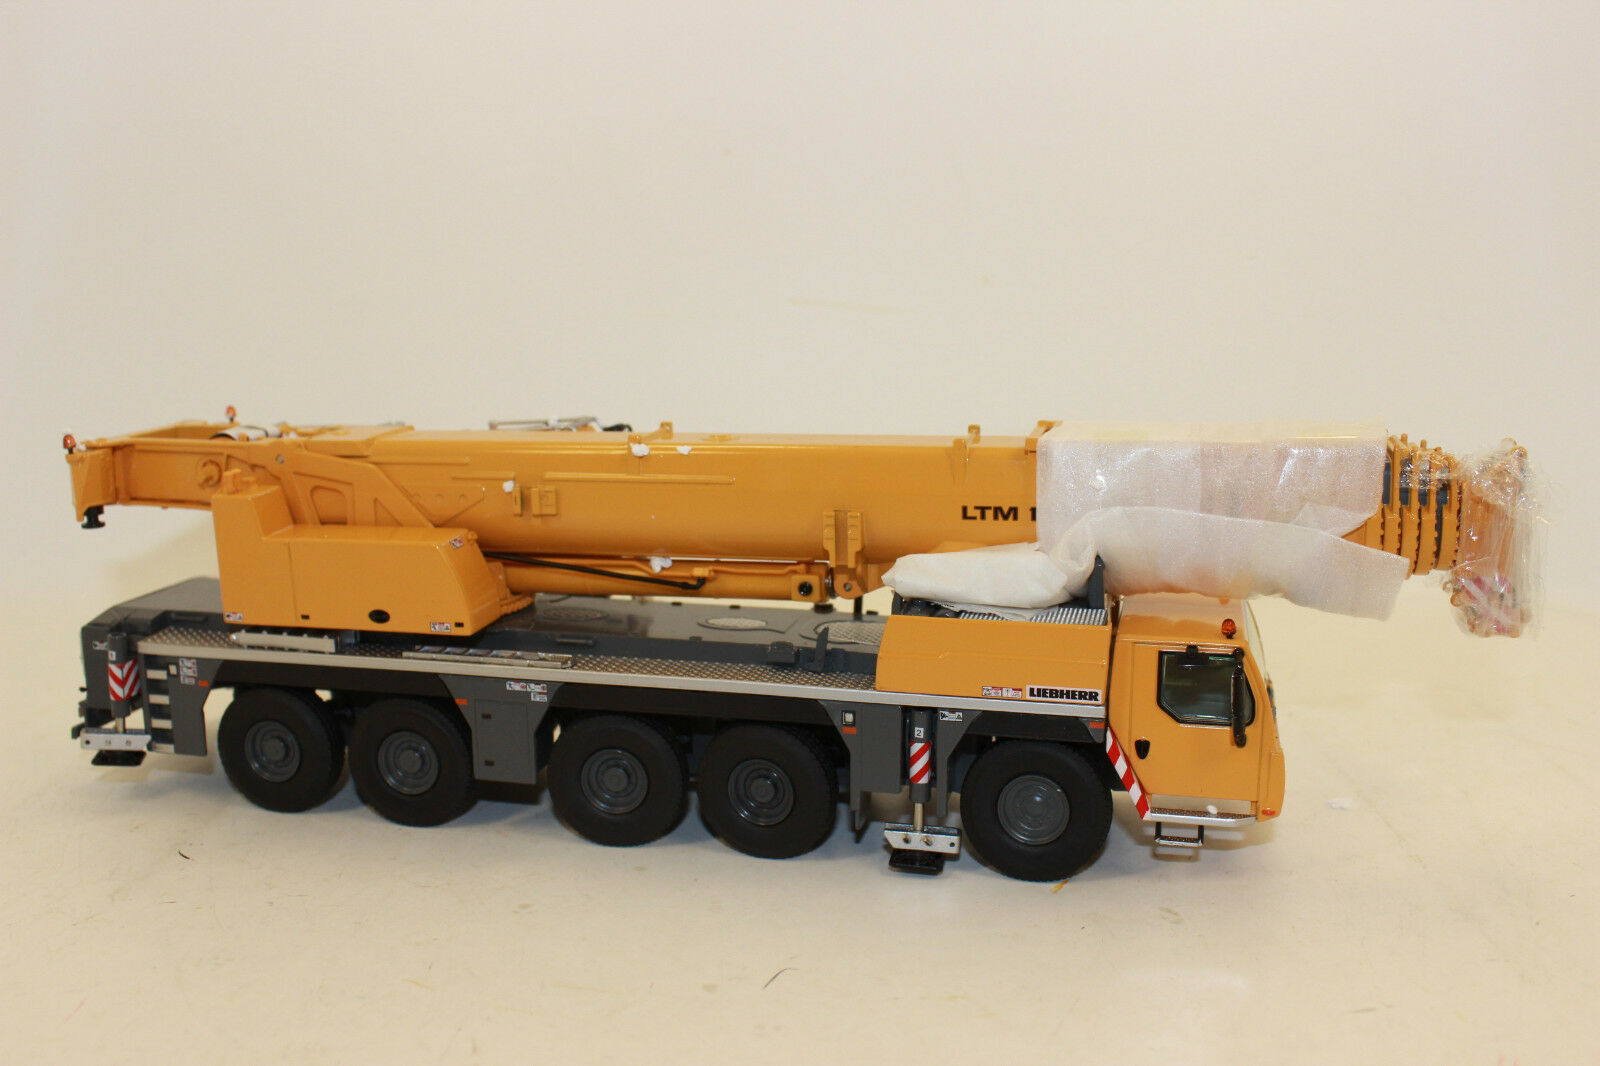 NZG 959 LTM 1250 5.1 Mobile Crane Liebherr 1 50 NEW BOXED